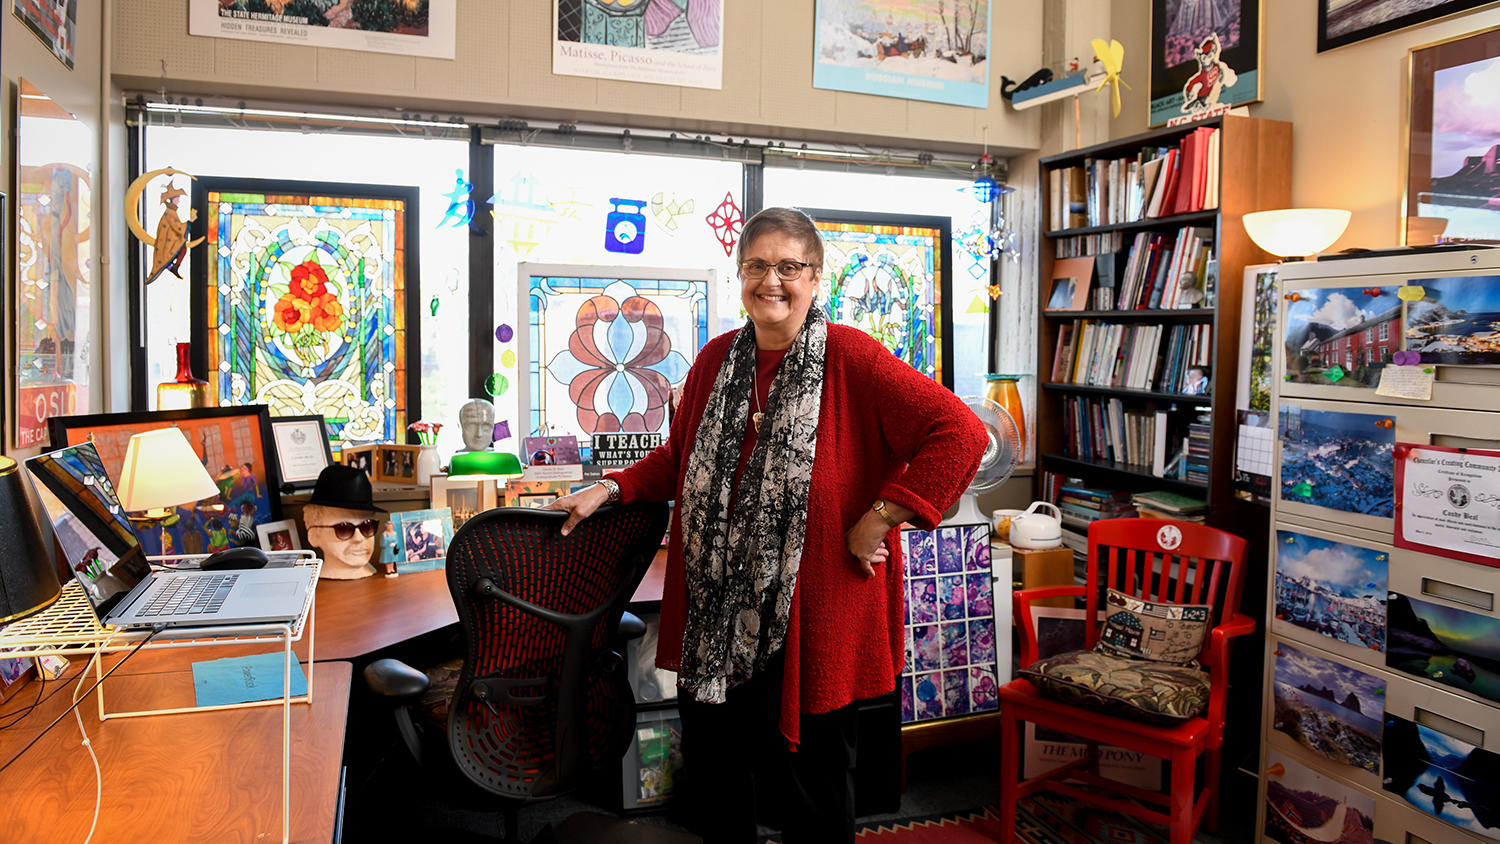 Candy Beal stands in her office before a large stained glass panel and many eclectic decorations.